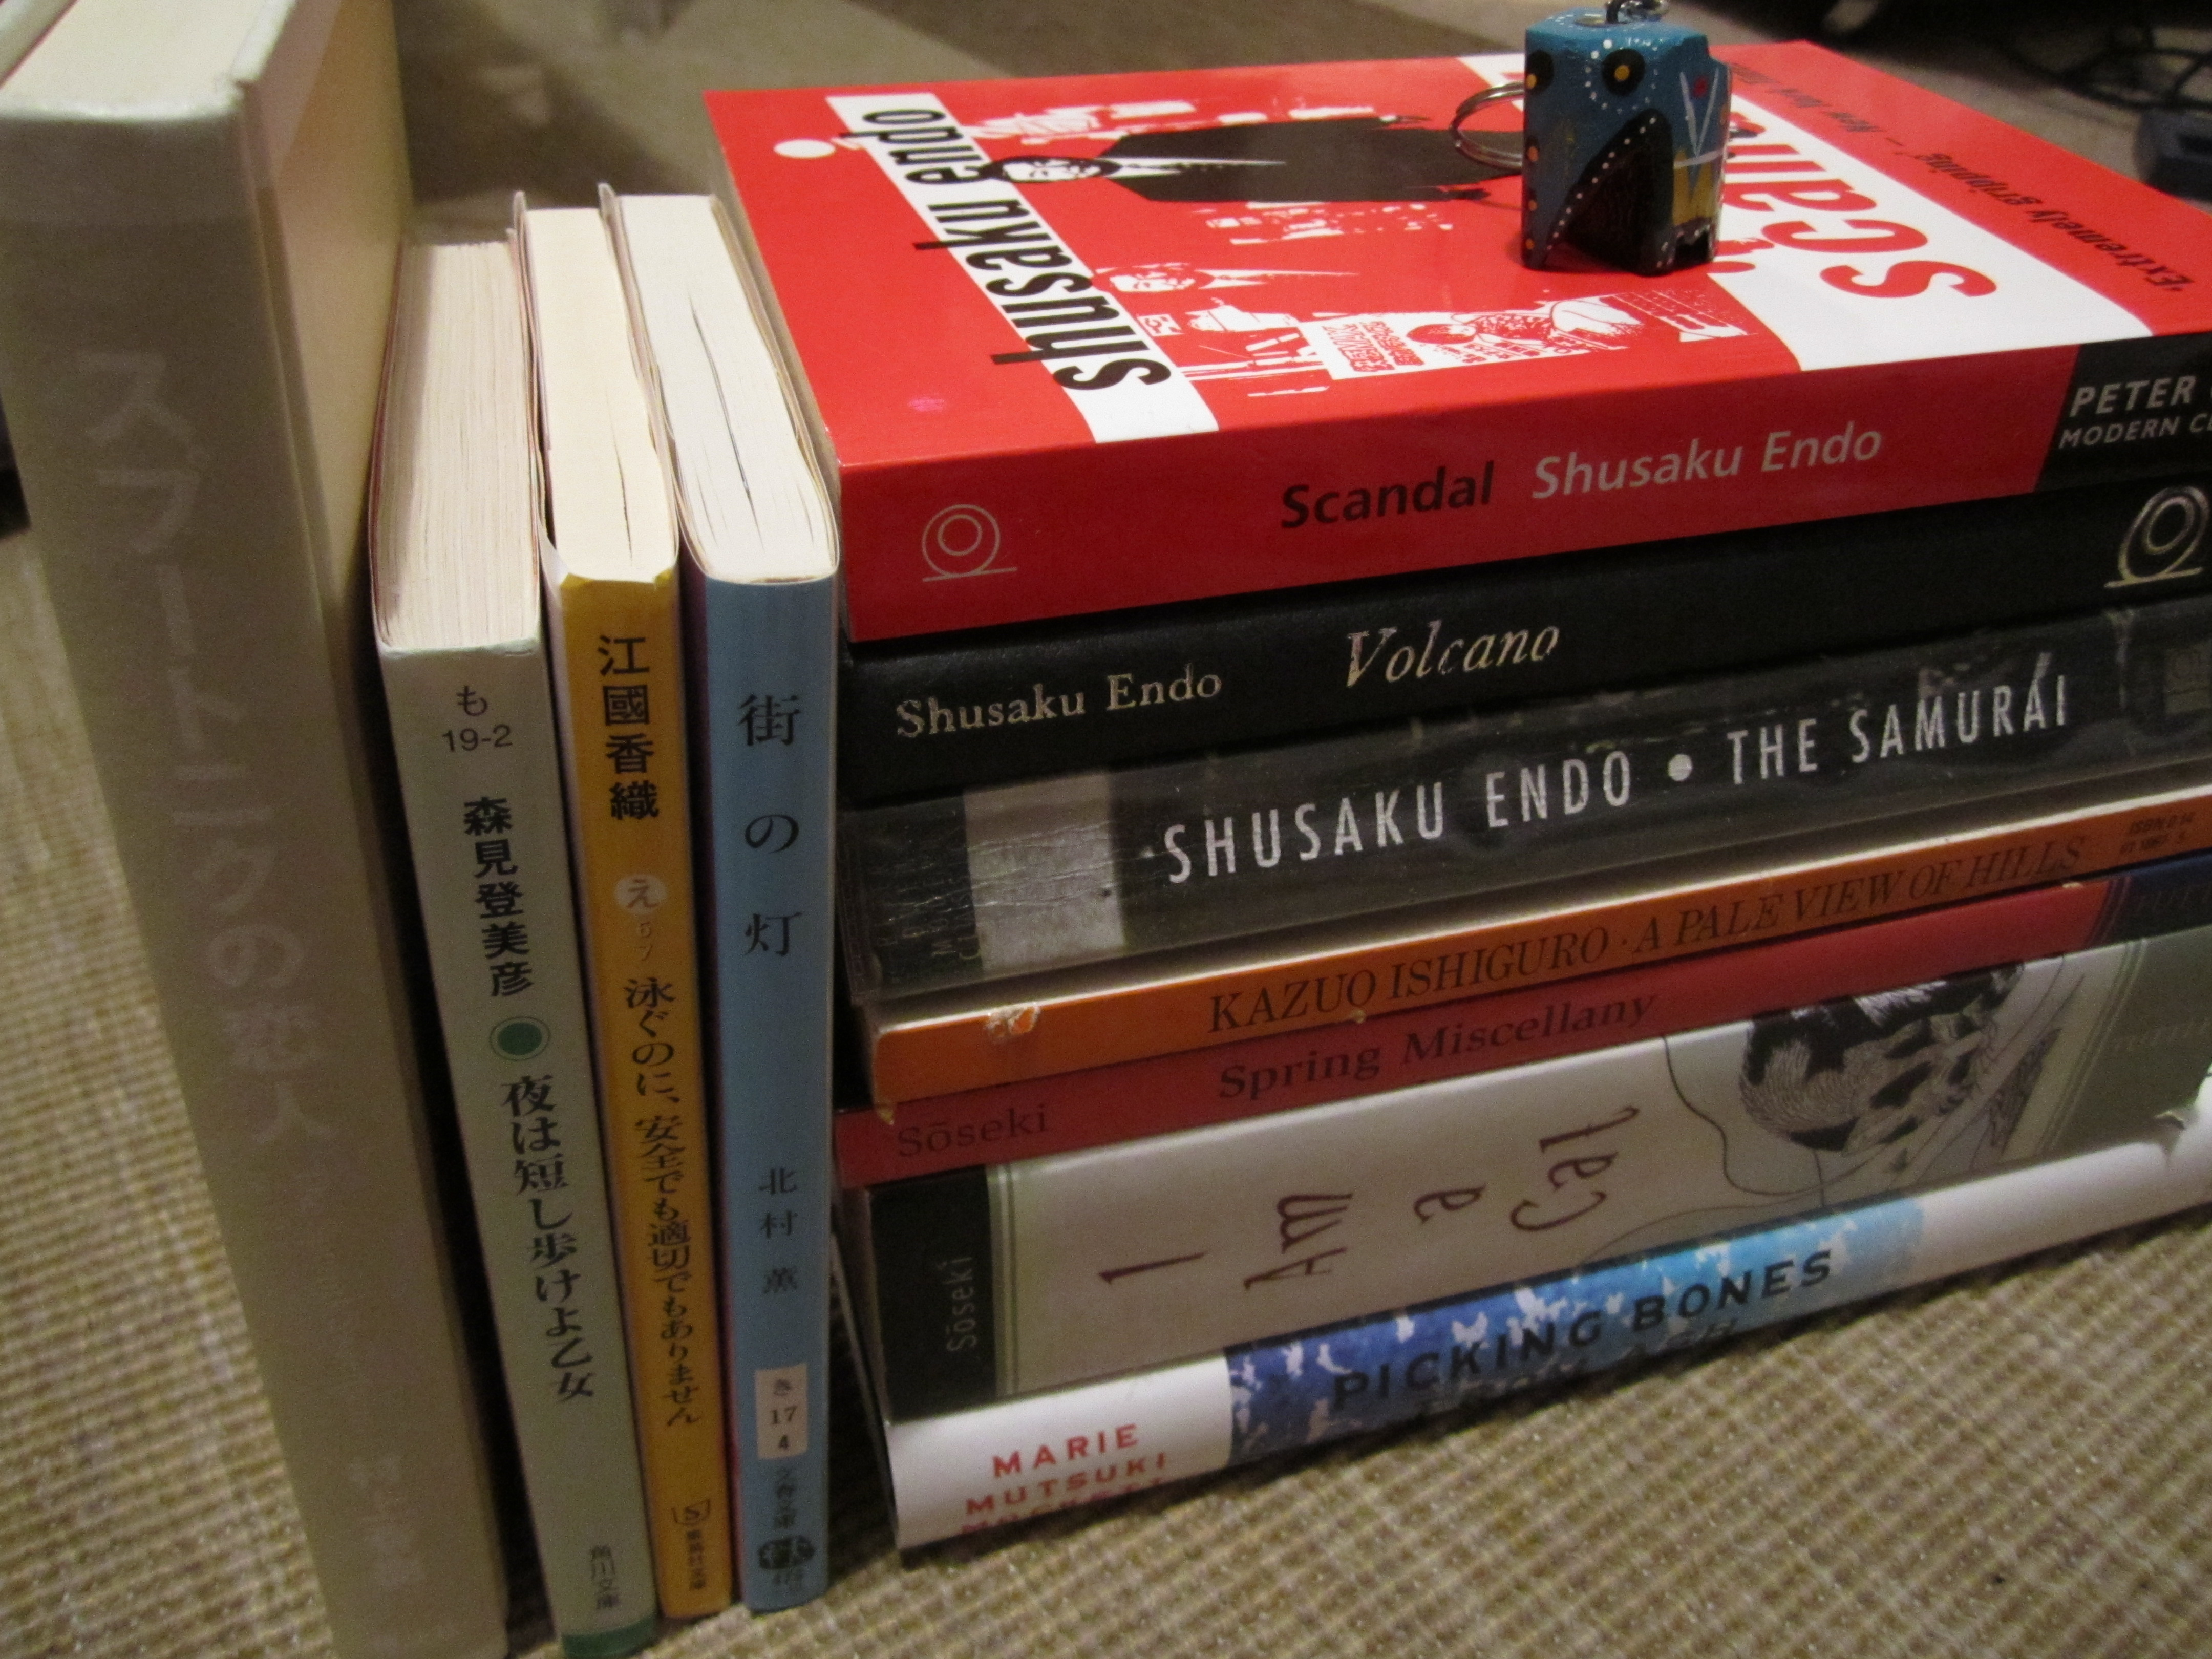 the meaning of silence shusaku endo s The recipient of the 1966 tanizaki prize, silence is shusaku endo's most highly acclaimed work and has been called one of the twentieth century's finest novels as empathetic as it is powerful, it is an astonishing exploration of faith and suffering and an award-winning classic.